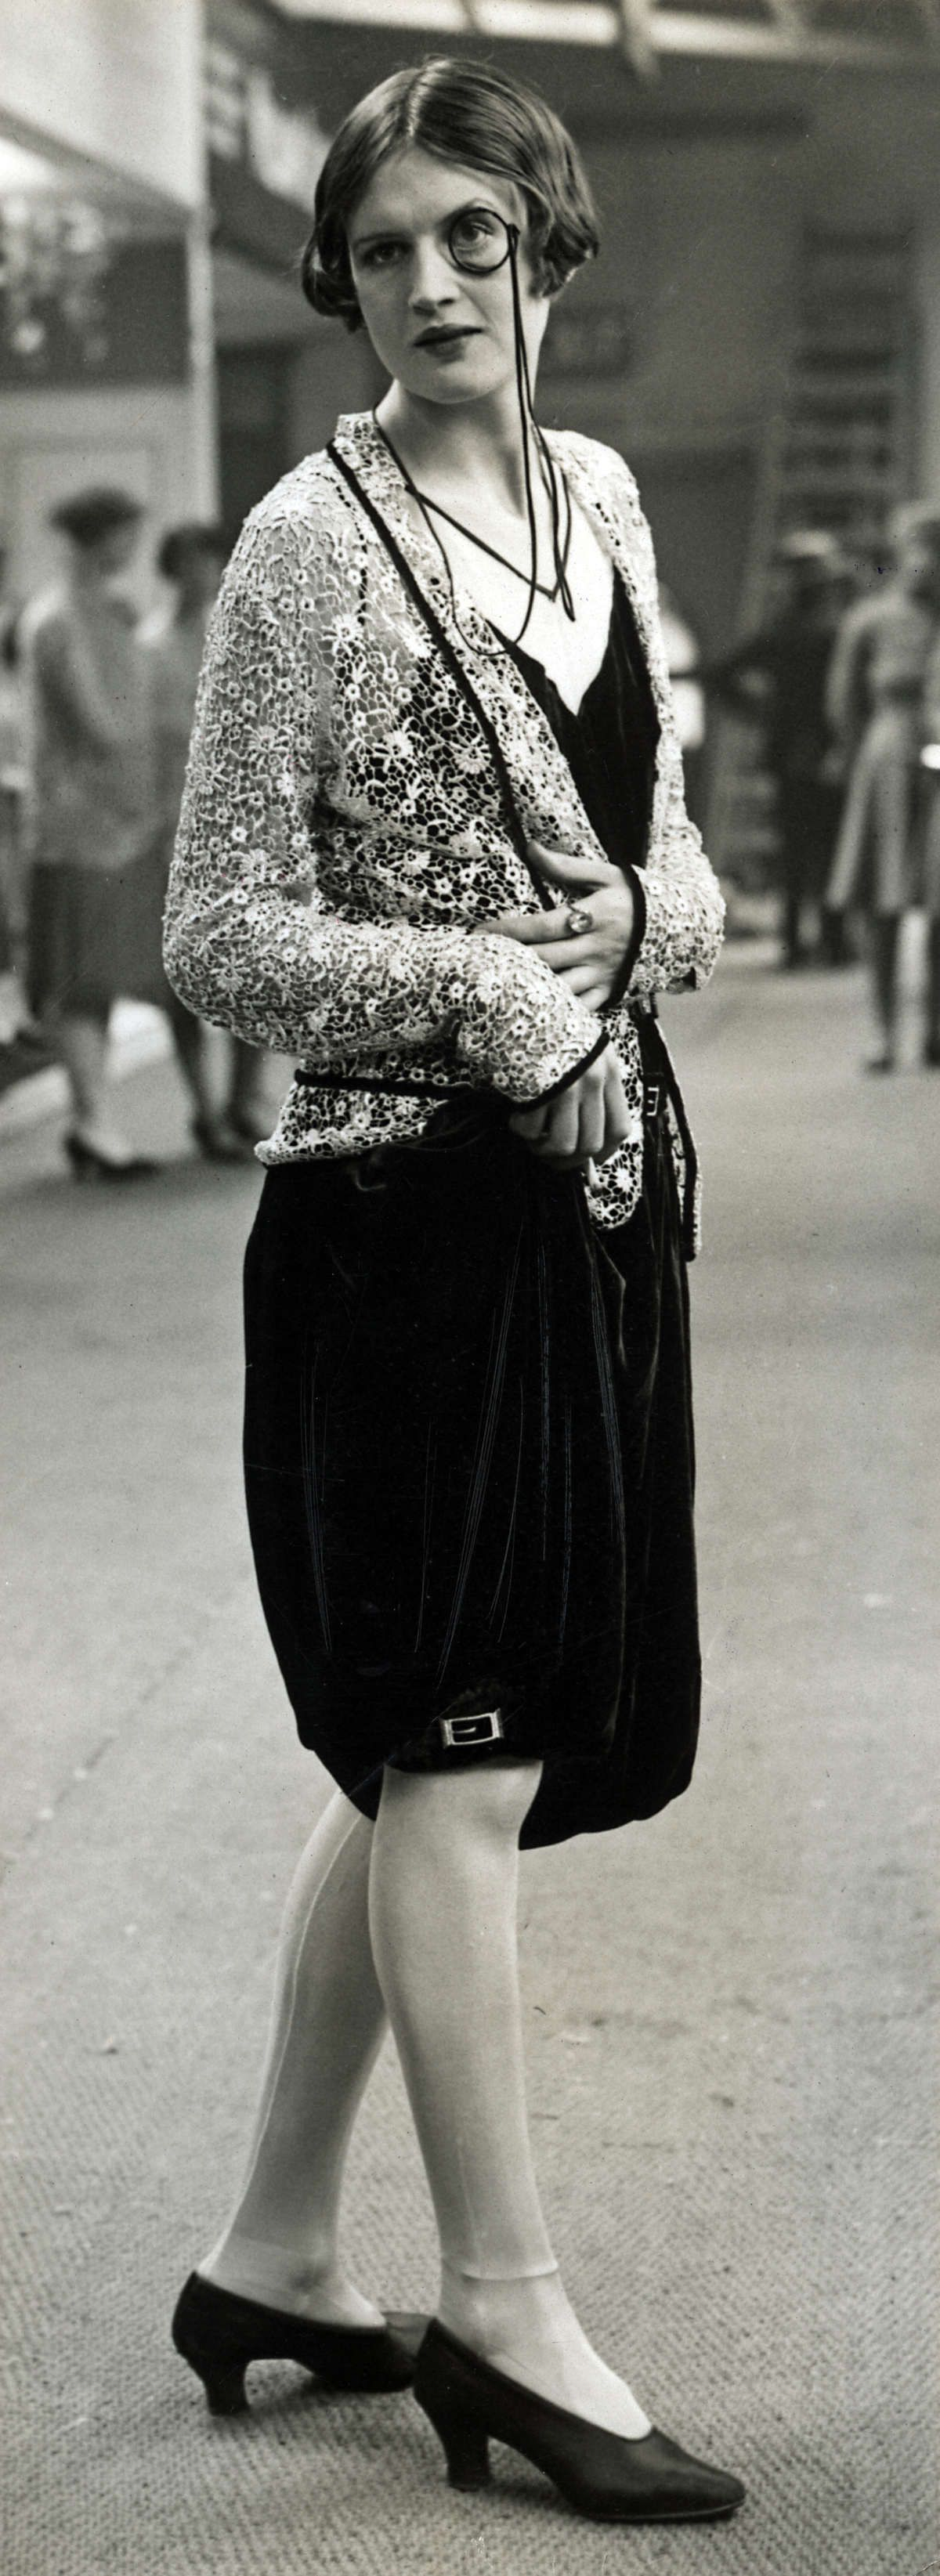 Bloomer-esque short pants and a jaunty monocle, what's not to adore? (Image 1927-1928.) #vintage #1920s #fashion